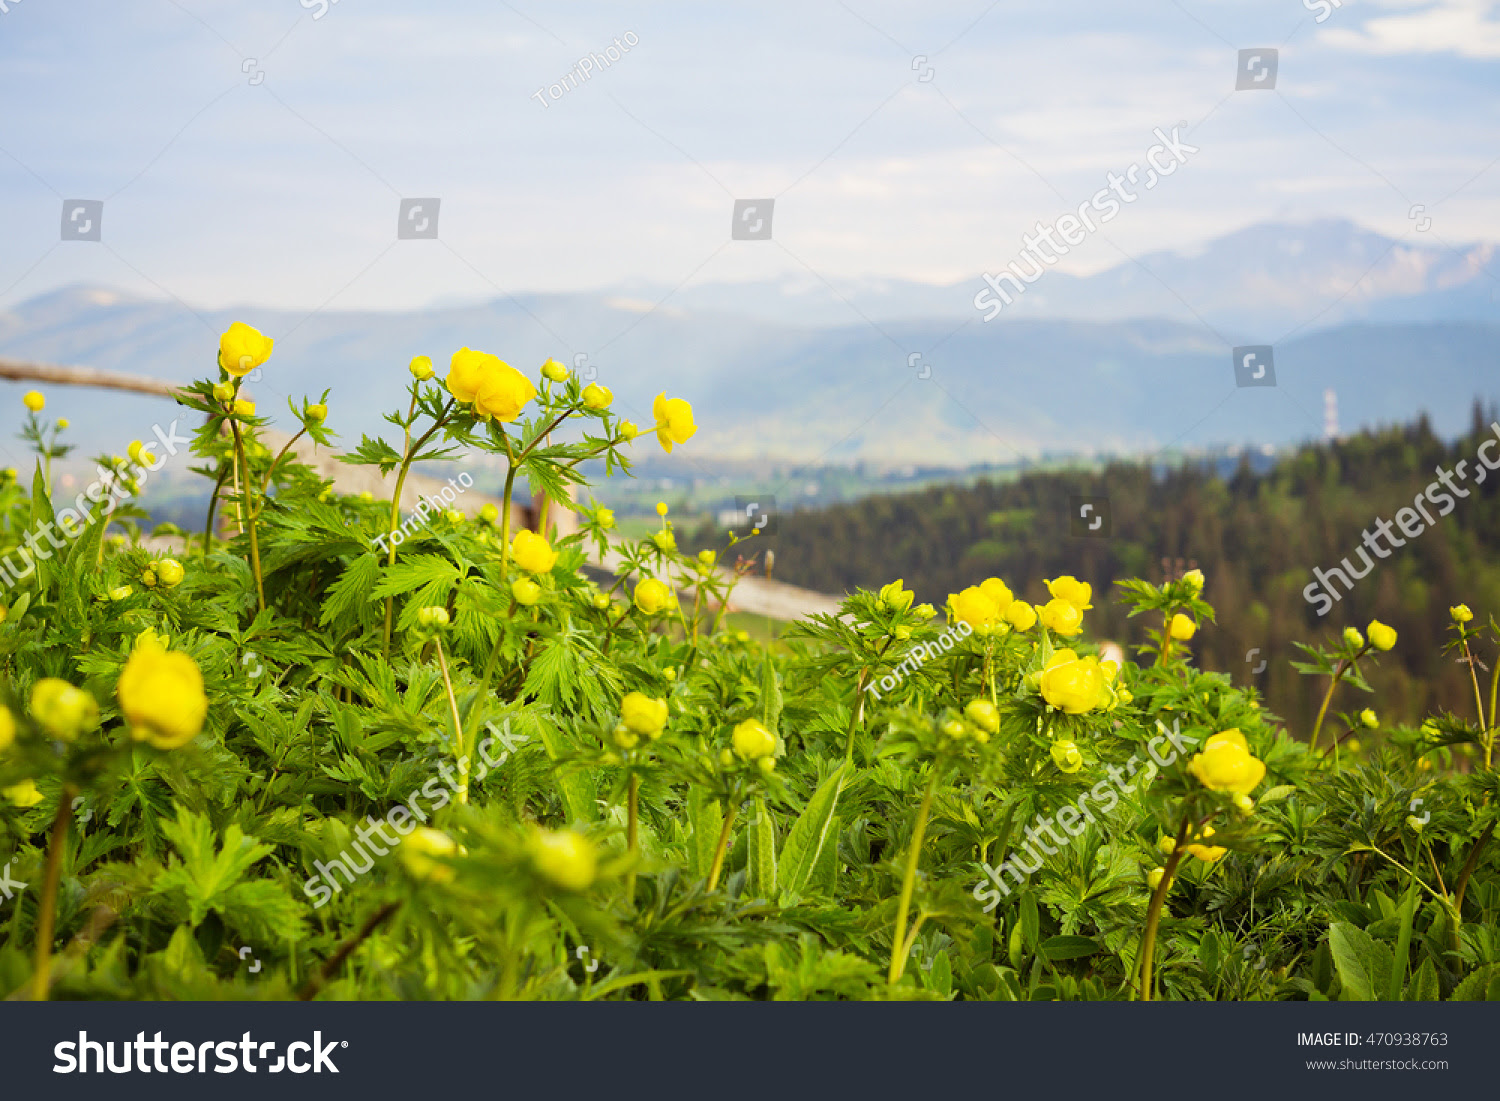 autumn, background, beauty, bloom, blooming, blossom, blossoming, blur, botany, bright, buttercup, closeup, color, colored, europaeus, fall, flora, floral, flower, forest, fresh, garden, globeflower, growth, head, landscape, light, macro, meadow, mountain, natural, nature, petal, plant, ranunculus, scenery, scenic, season, selective, shallow, small, spring, stem, sunset, trollius, vintage, warm, wild, wildflower, yellow